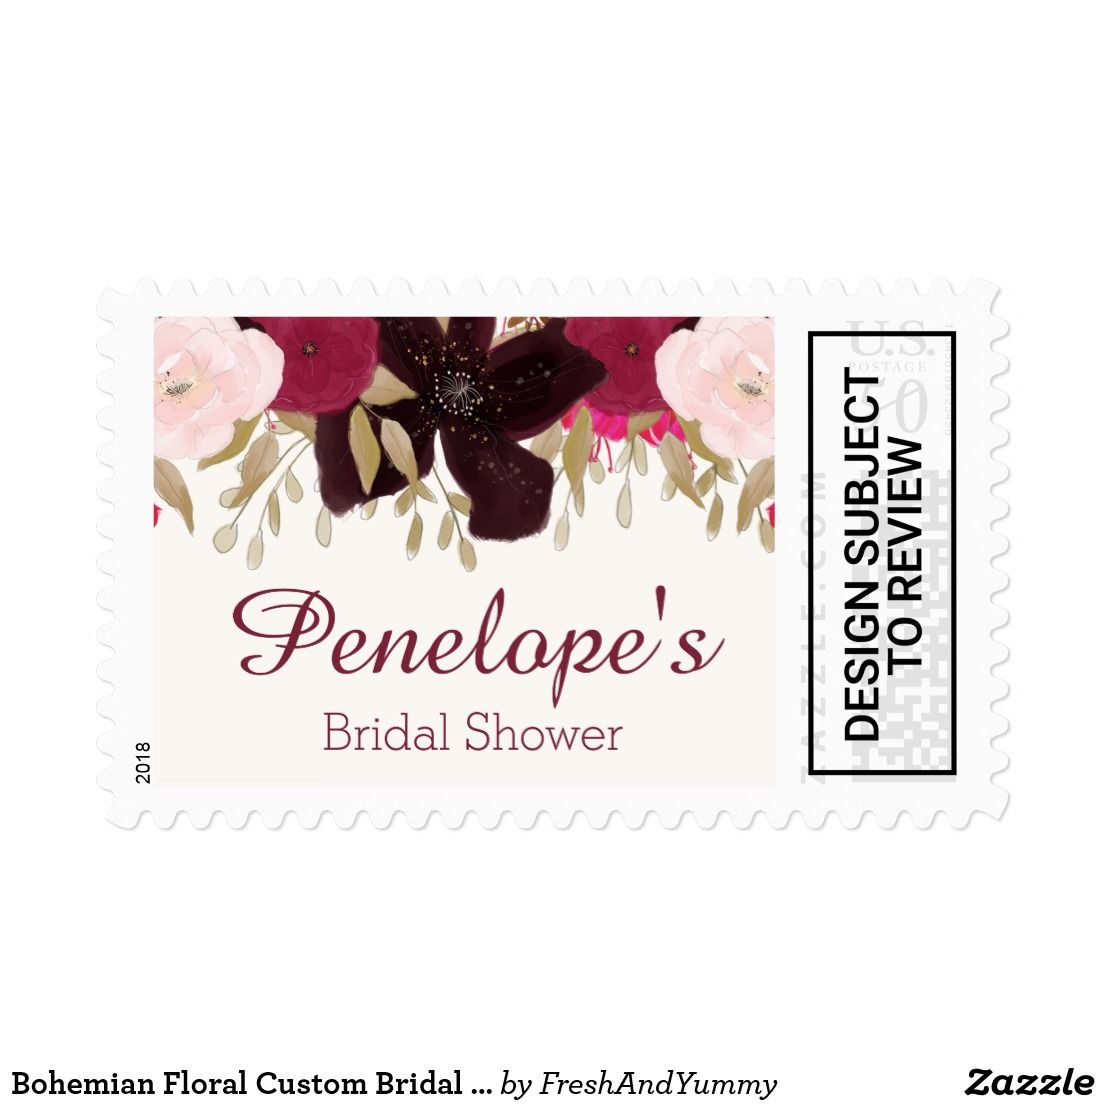 bohemian floral custom bridal shower postage stamp this bohemian floral custom bridal shower postage stamp is perfect for a boho theme bridal shower